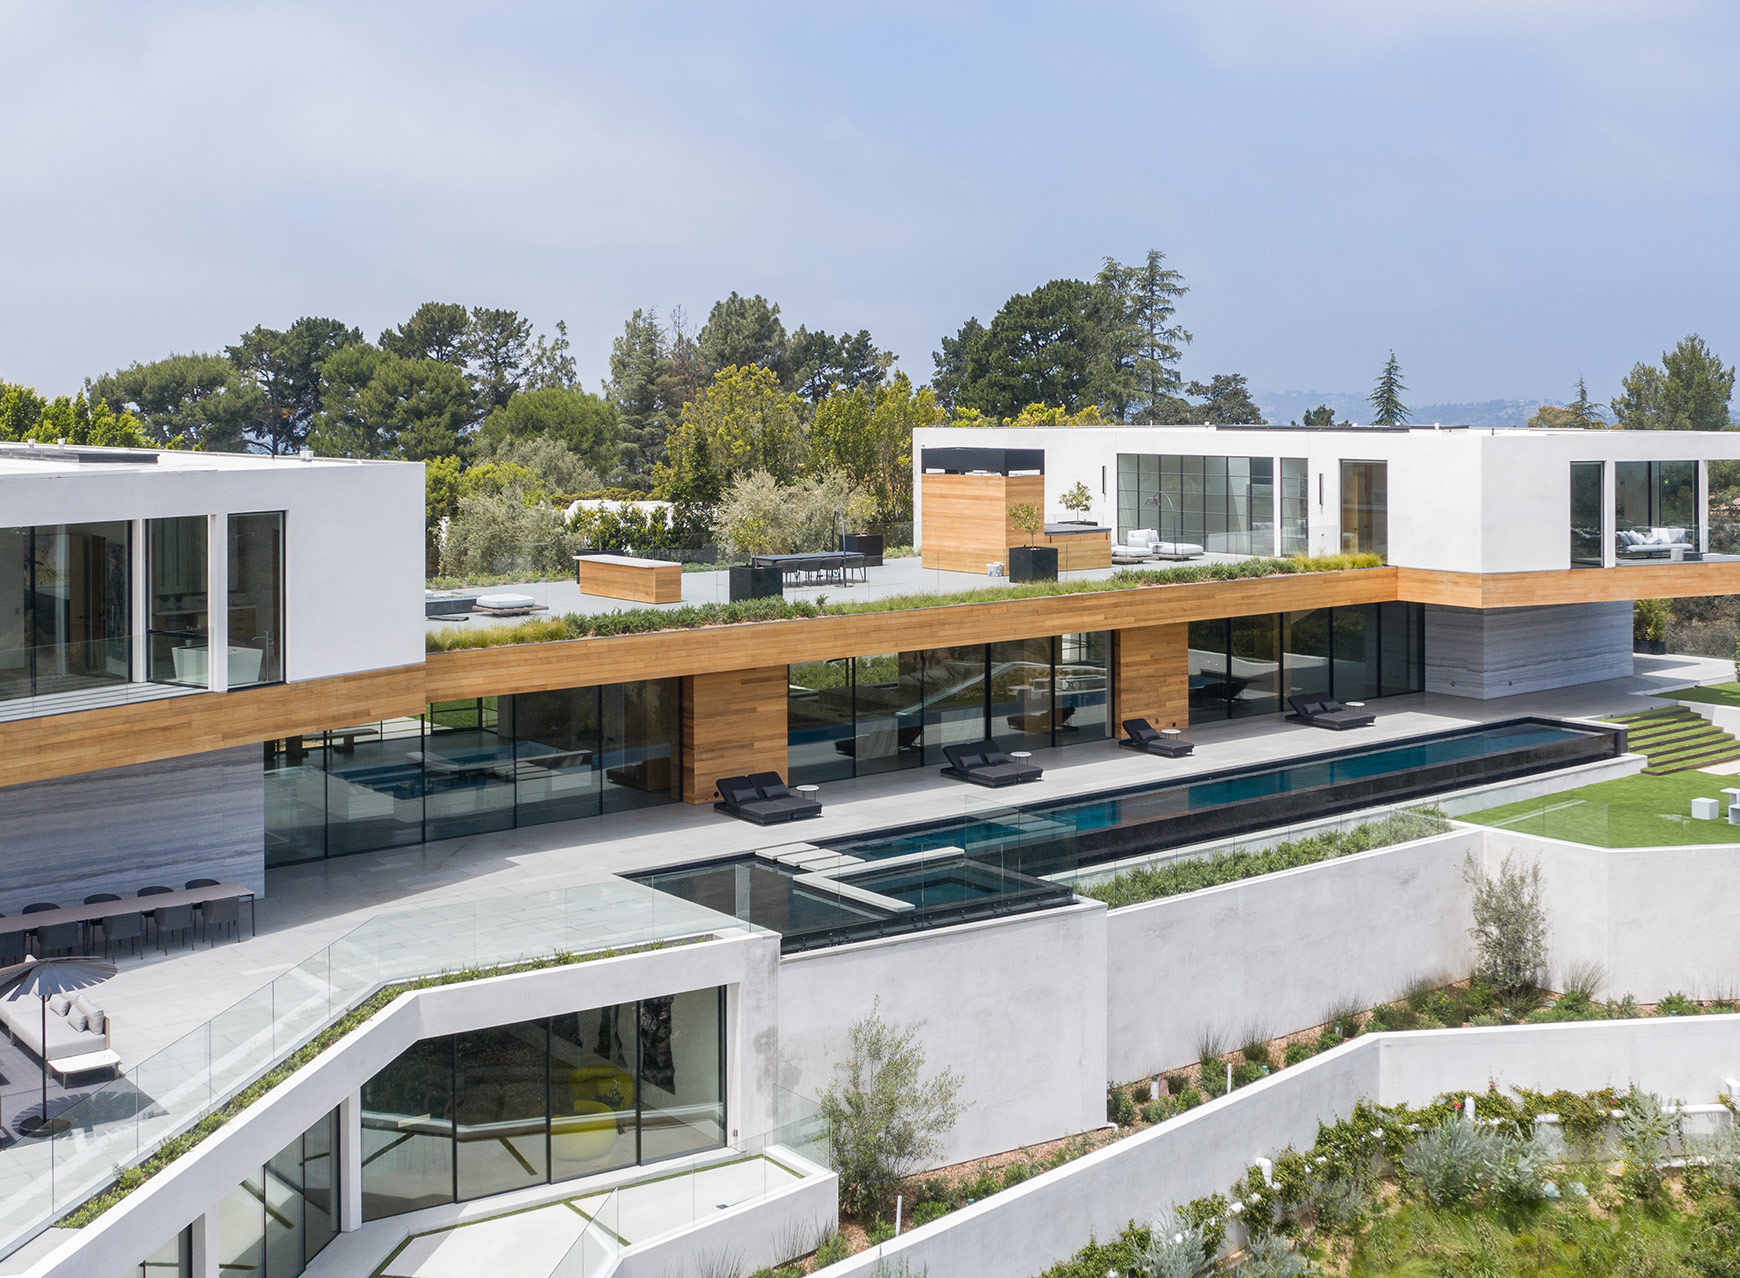 New $46M Home Adds To Stratospheric Price Growth Of A Beverly Hills Enclave